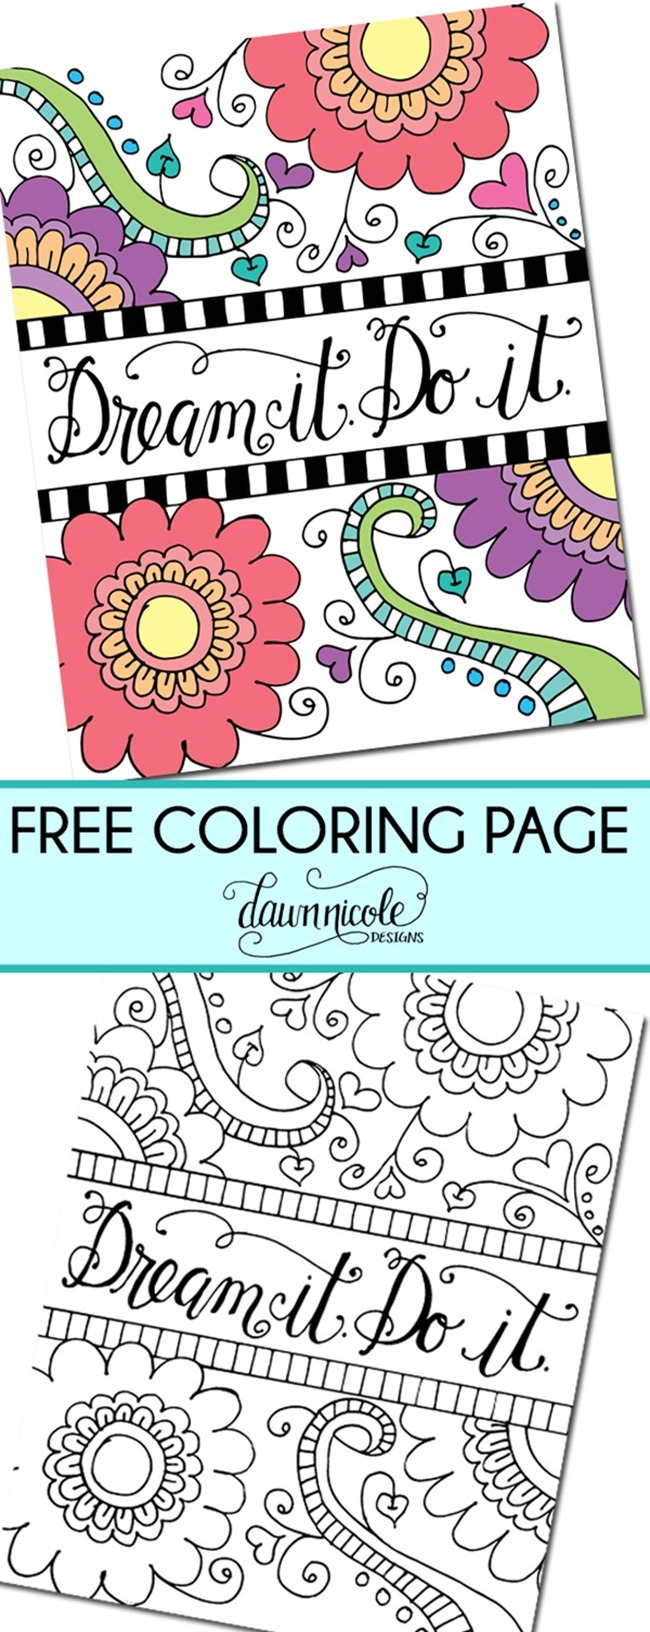 Free coloring pages for adults quotes - 12 Inspiring Quote Coloring Pages For Adults Dream It